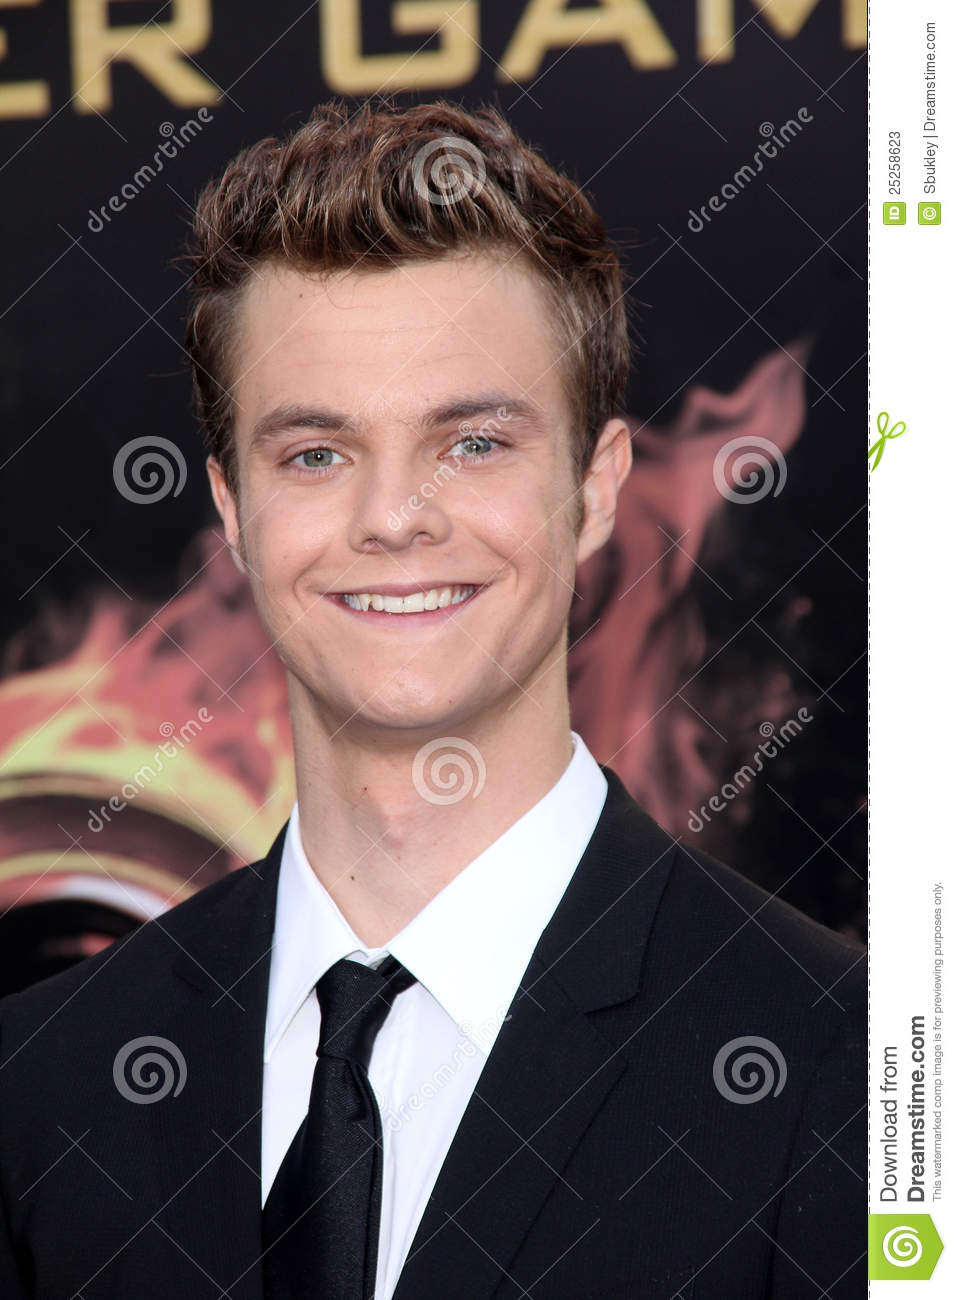 jack quaid vinyljack quaid actor, jack quaid hunger games, jack quaid instagram, jack quaid imdb, jack quaid marvel, jack quaid 2015, jack quaid vinyl, jack quaid height, jack quaid images, jack quaid meg ryan, jack quaid gay, jack quaid daisy ryan, jack quaid movies, jack quaid twitter, jack quaid photo, jack quaid all saints, jack quaid net worth, jack quaid parents, jack quaid pics, jack quaid shirtless